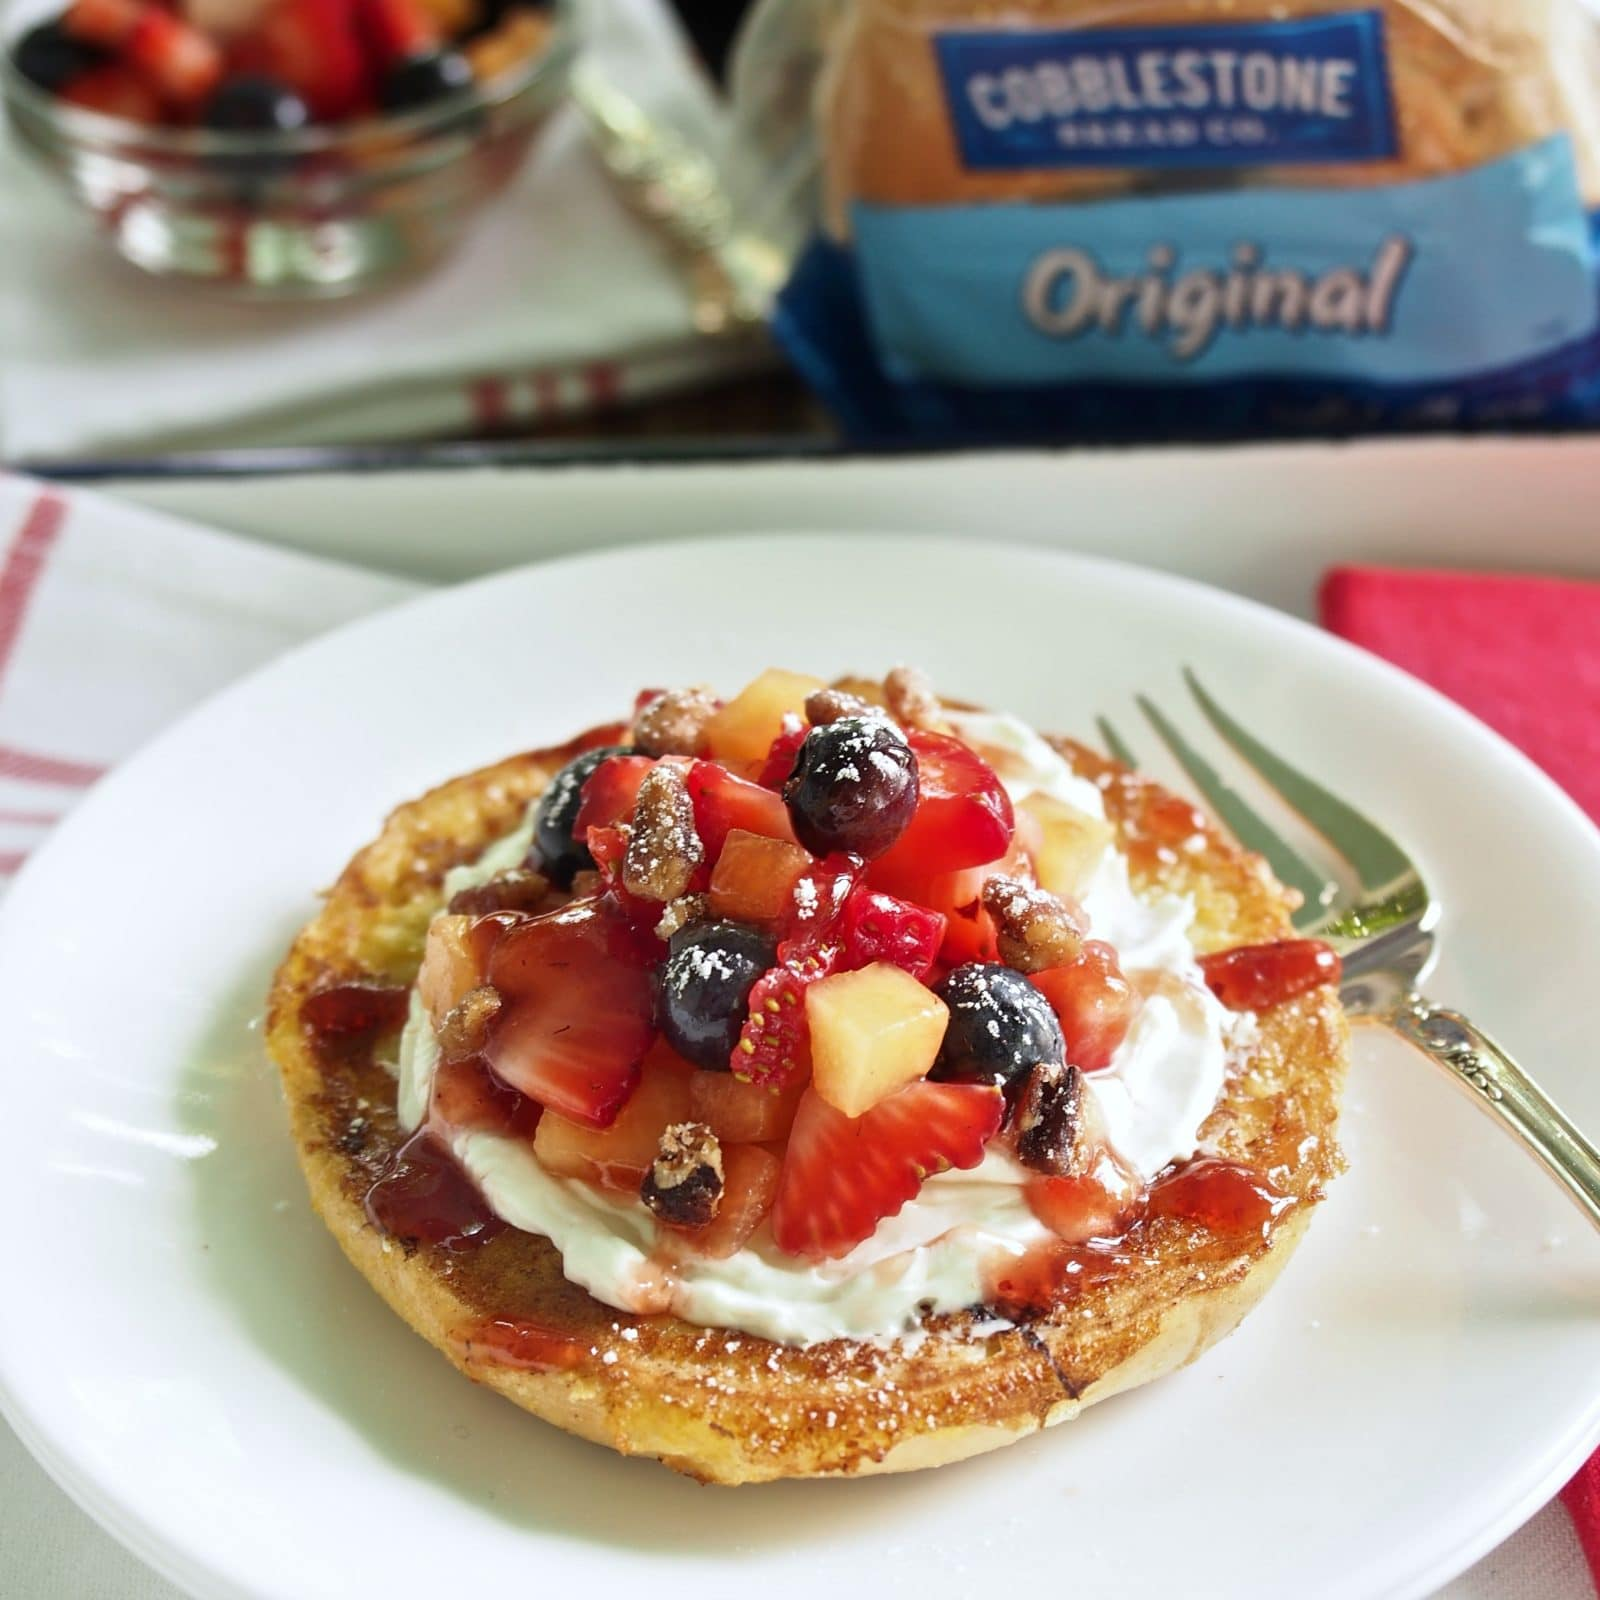 Berry-Topped French Toast Bagels w/Cobblestone Bread Co. Bagels-a great way to start the day. French toasted bagels topped w/fresh berries & cream cheese. Simply Sated